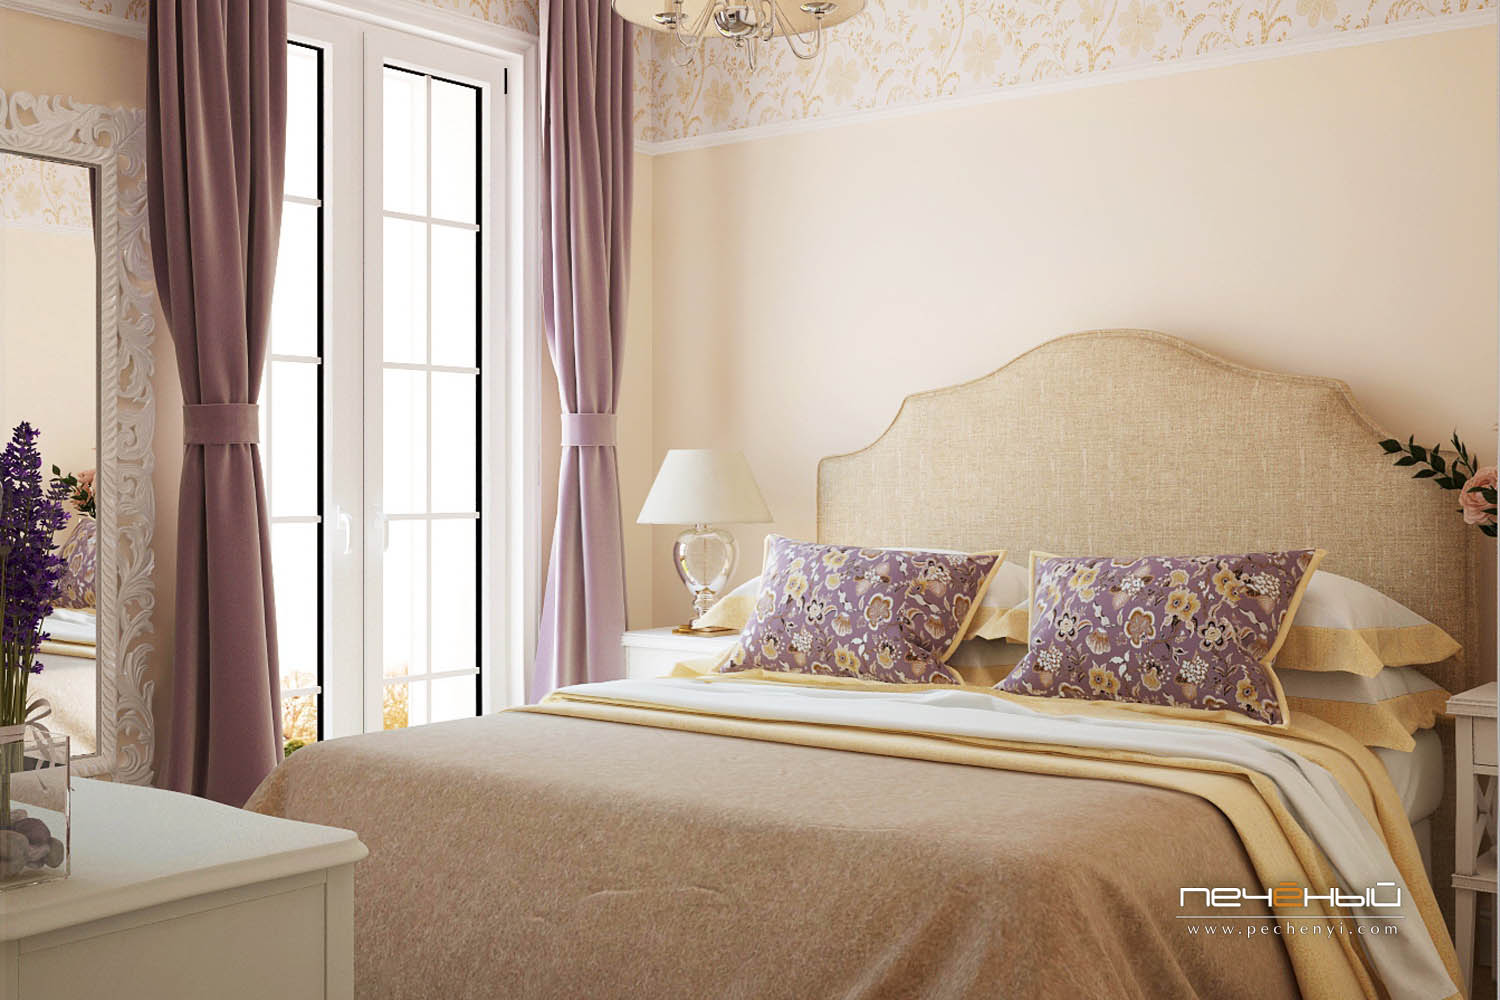 The master bedroom is done in buttermilk and purple, textiles make the room very cozy and eye catchy